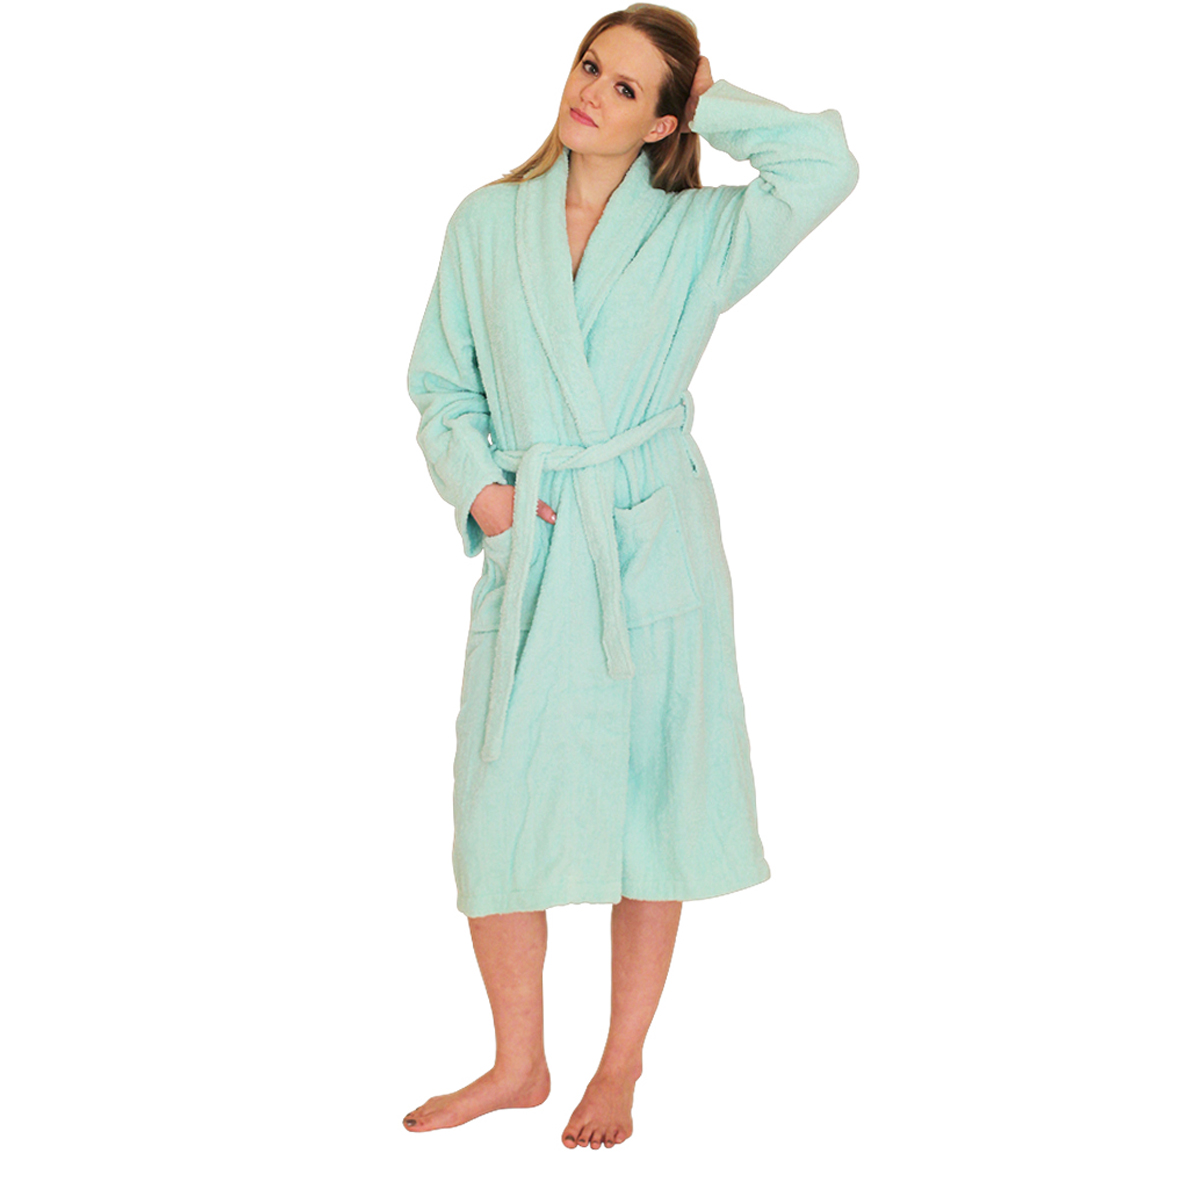 Bathrobes Terry cloth robes for women from  15 Spa Hotel quality ... 0e7177d3a